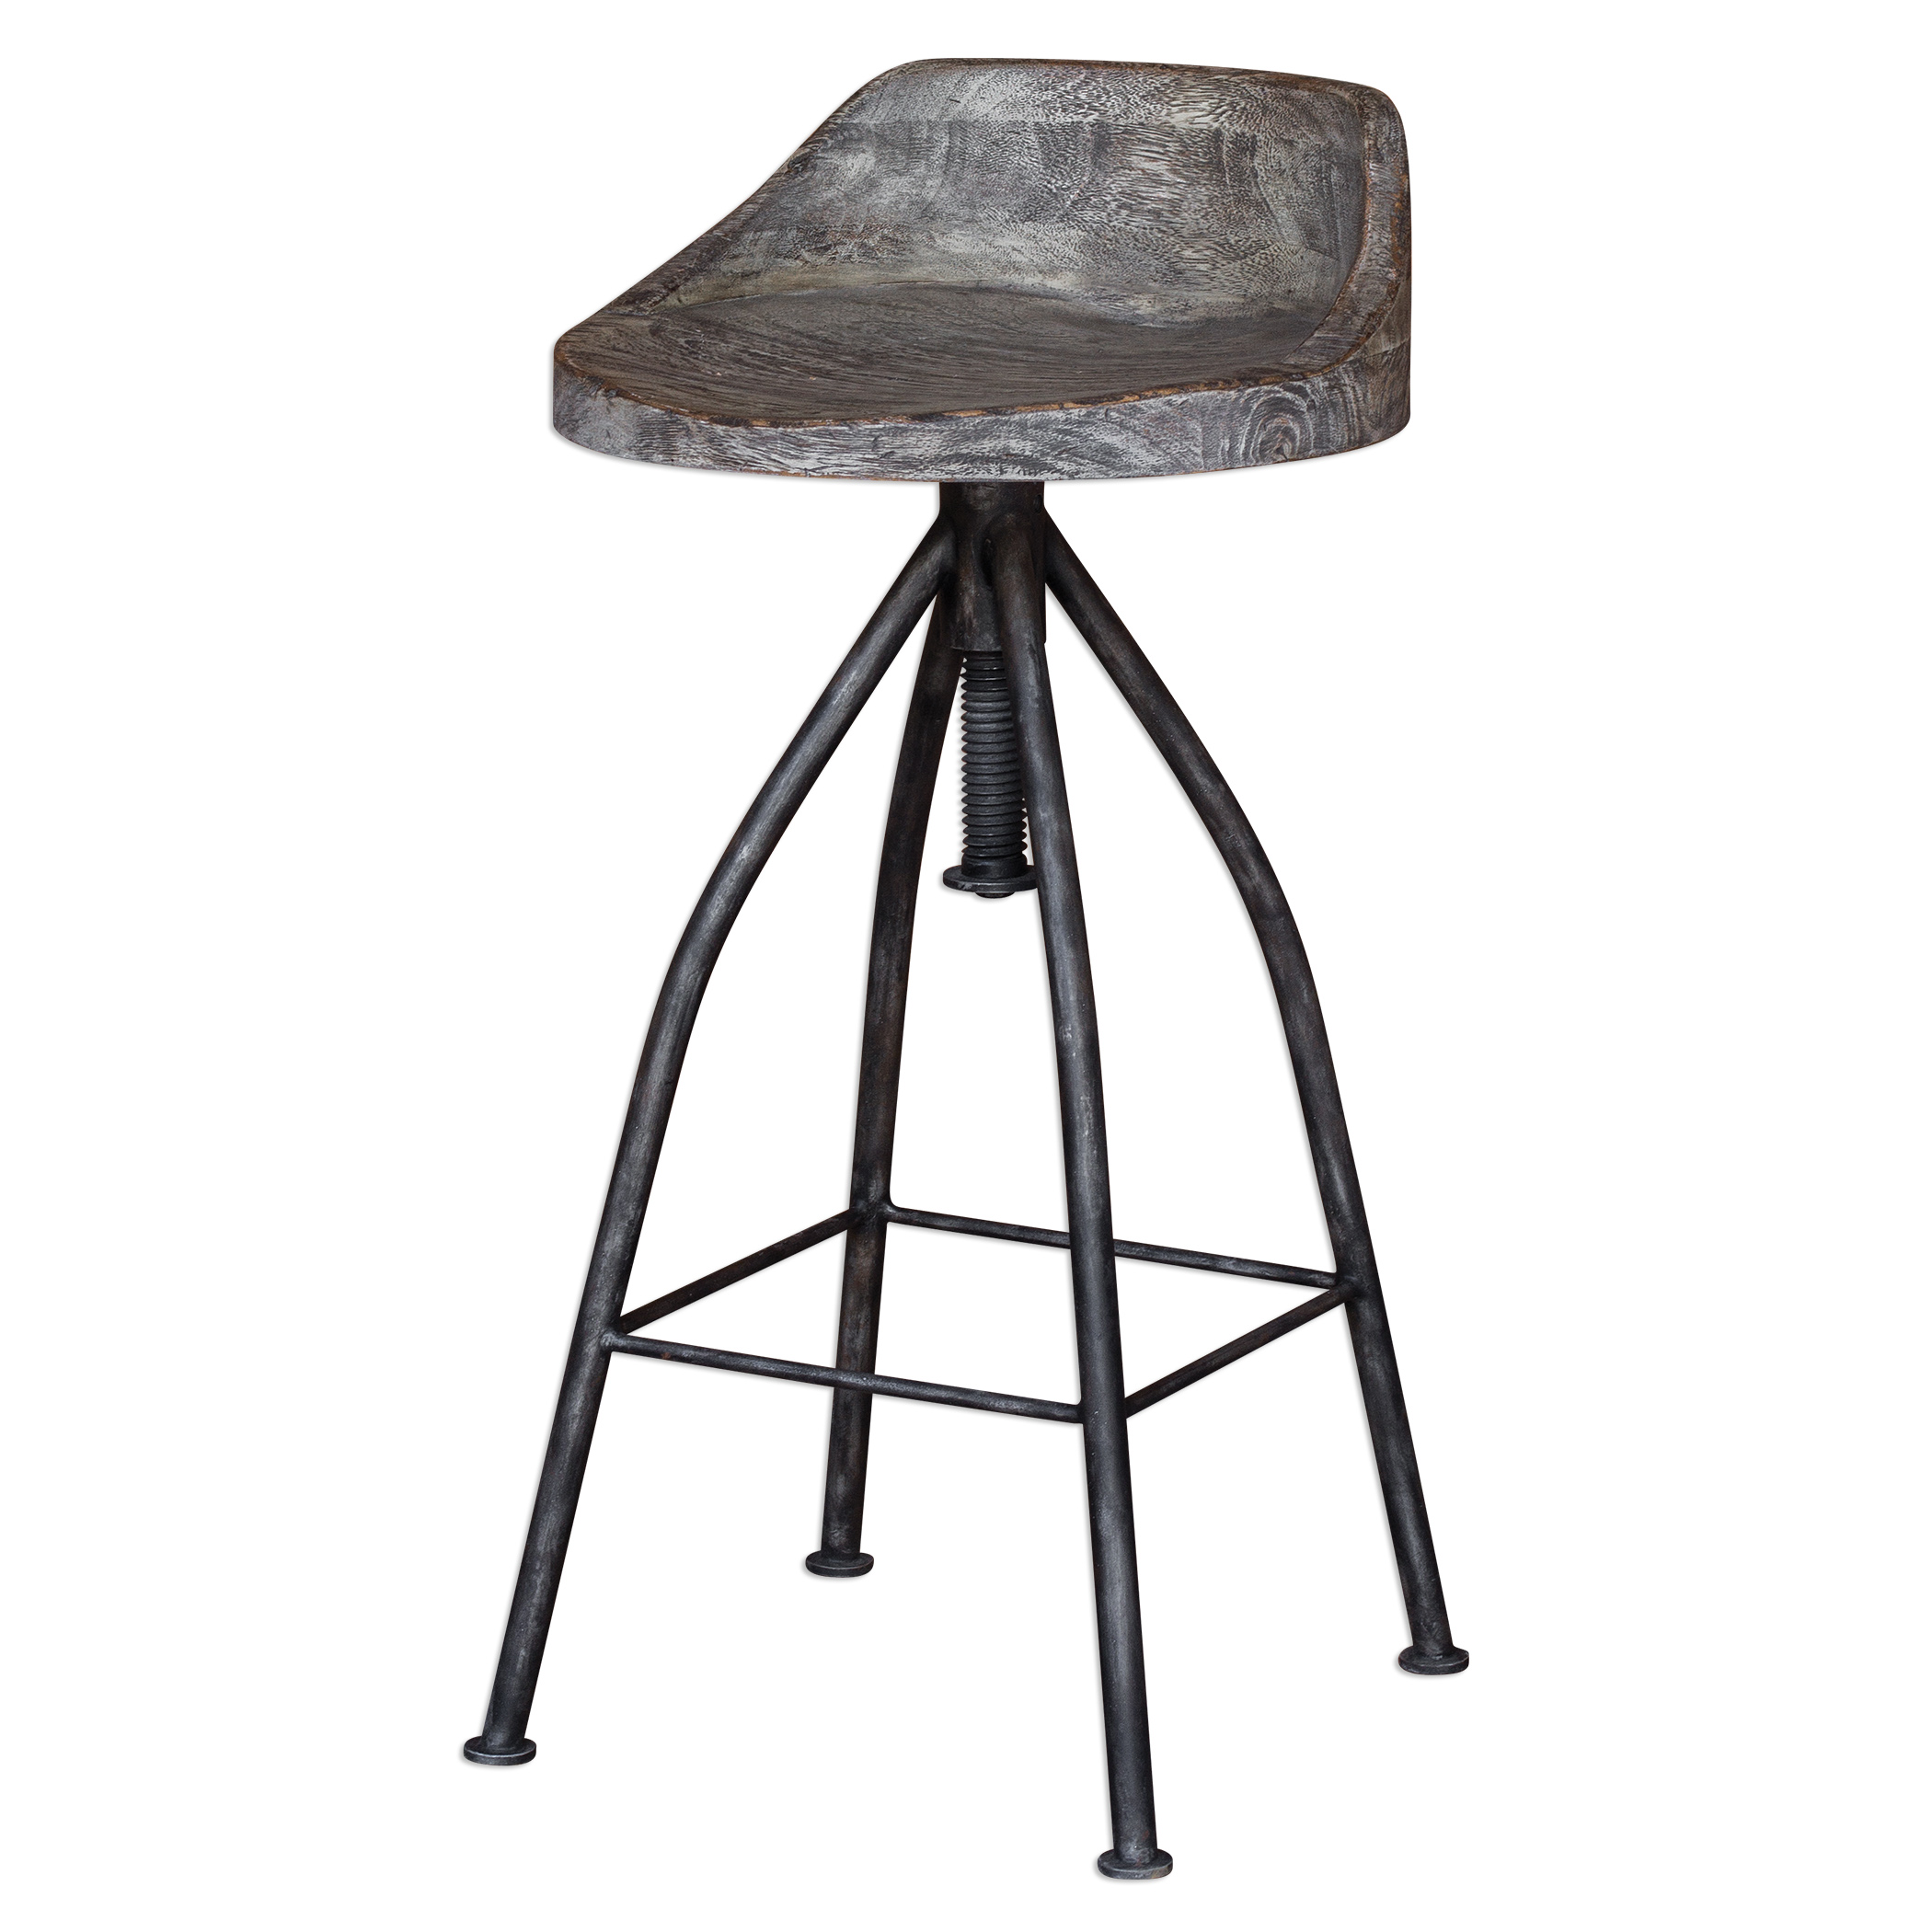 Accent Furniture - Stools Kairu Wooden Bar Stool by Uttermost at Suburban Furniture